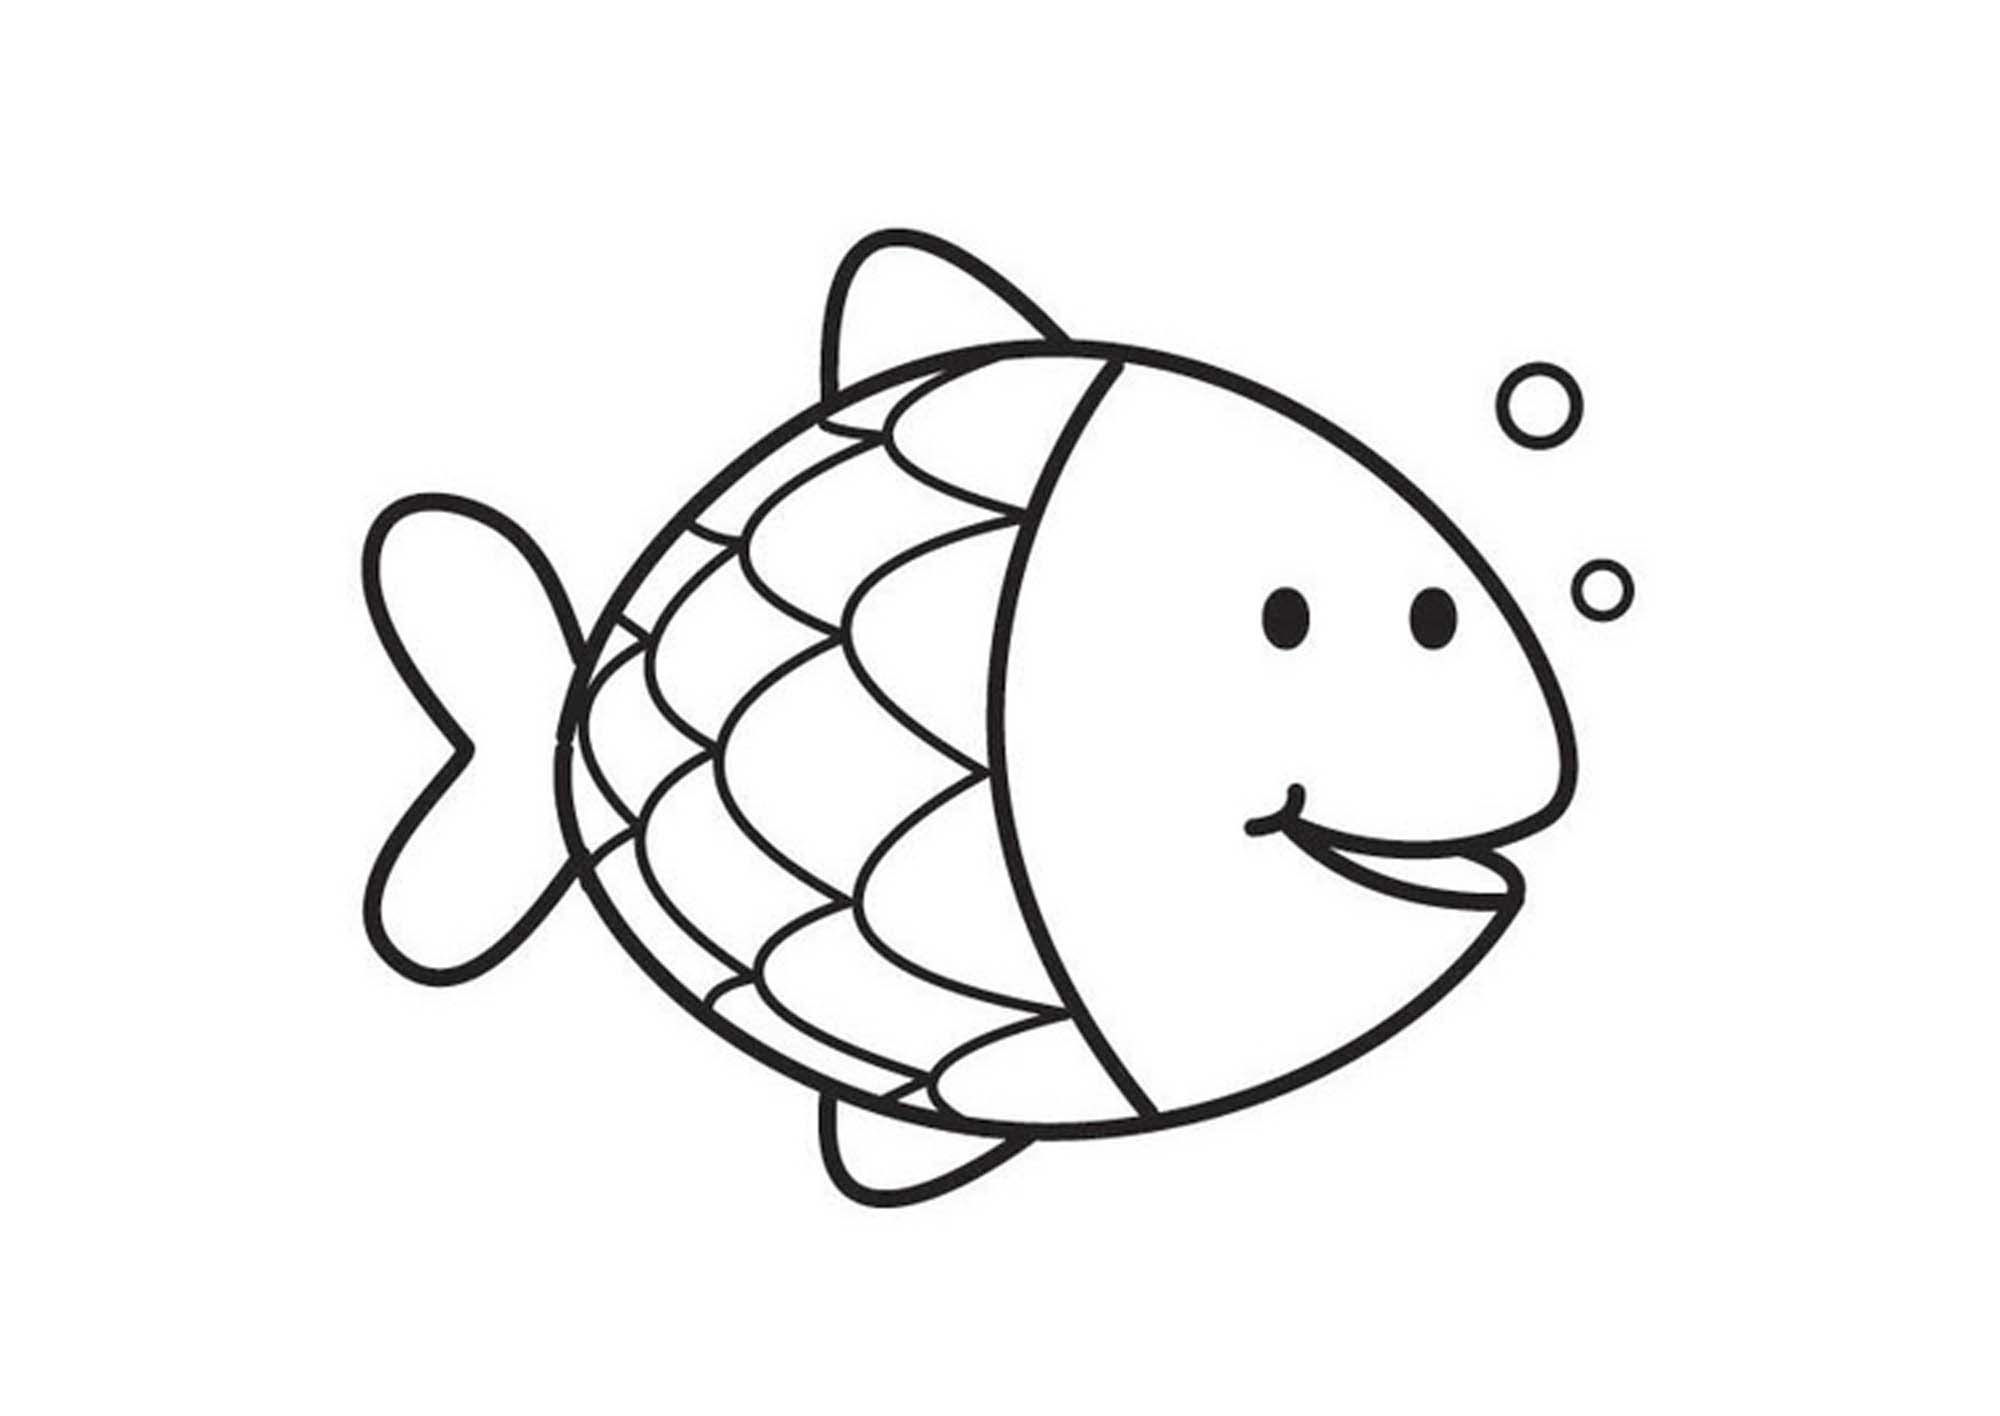 fish to color fish coloring pages for kids preschool and kindergarten fish color to